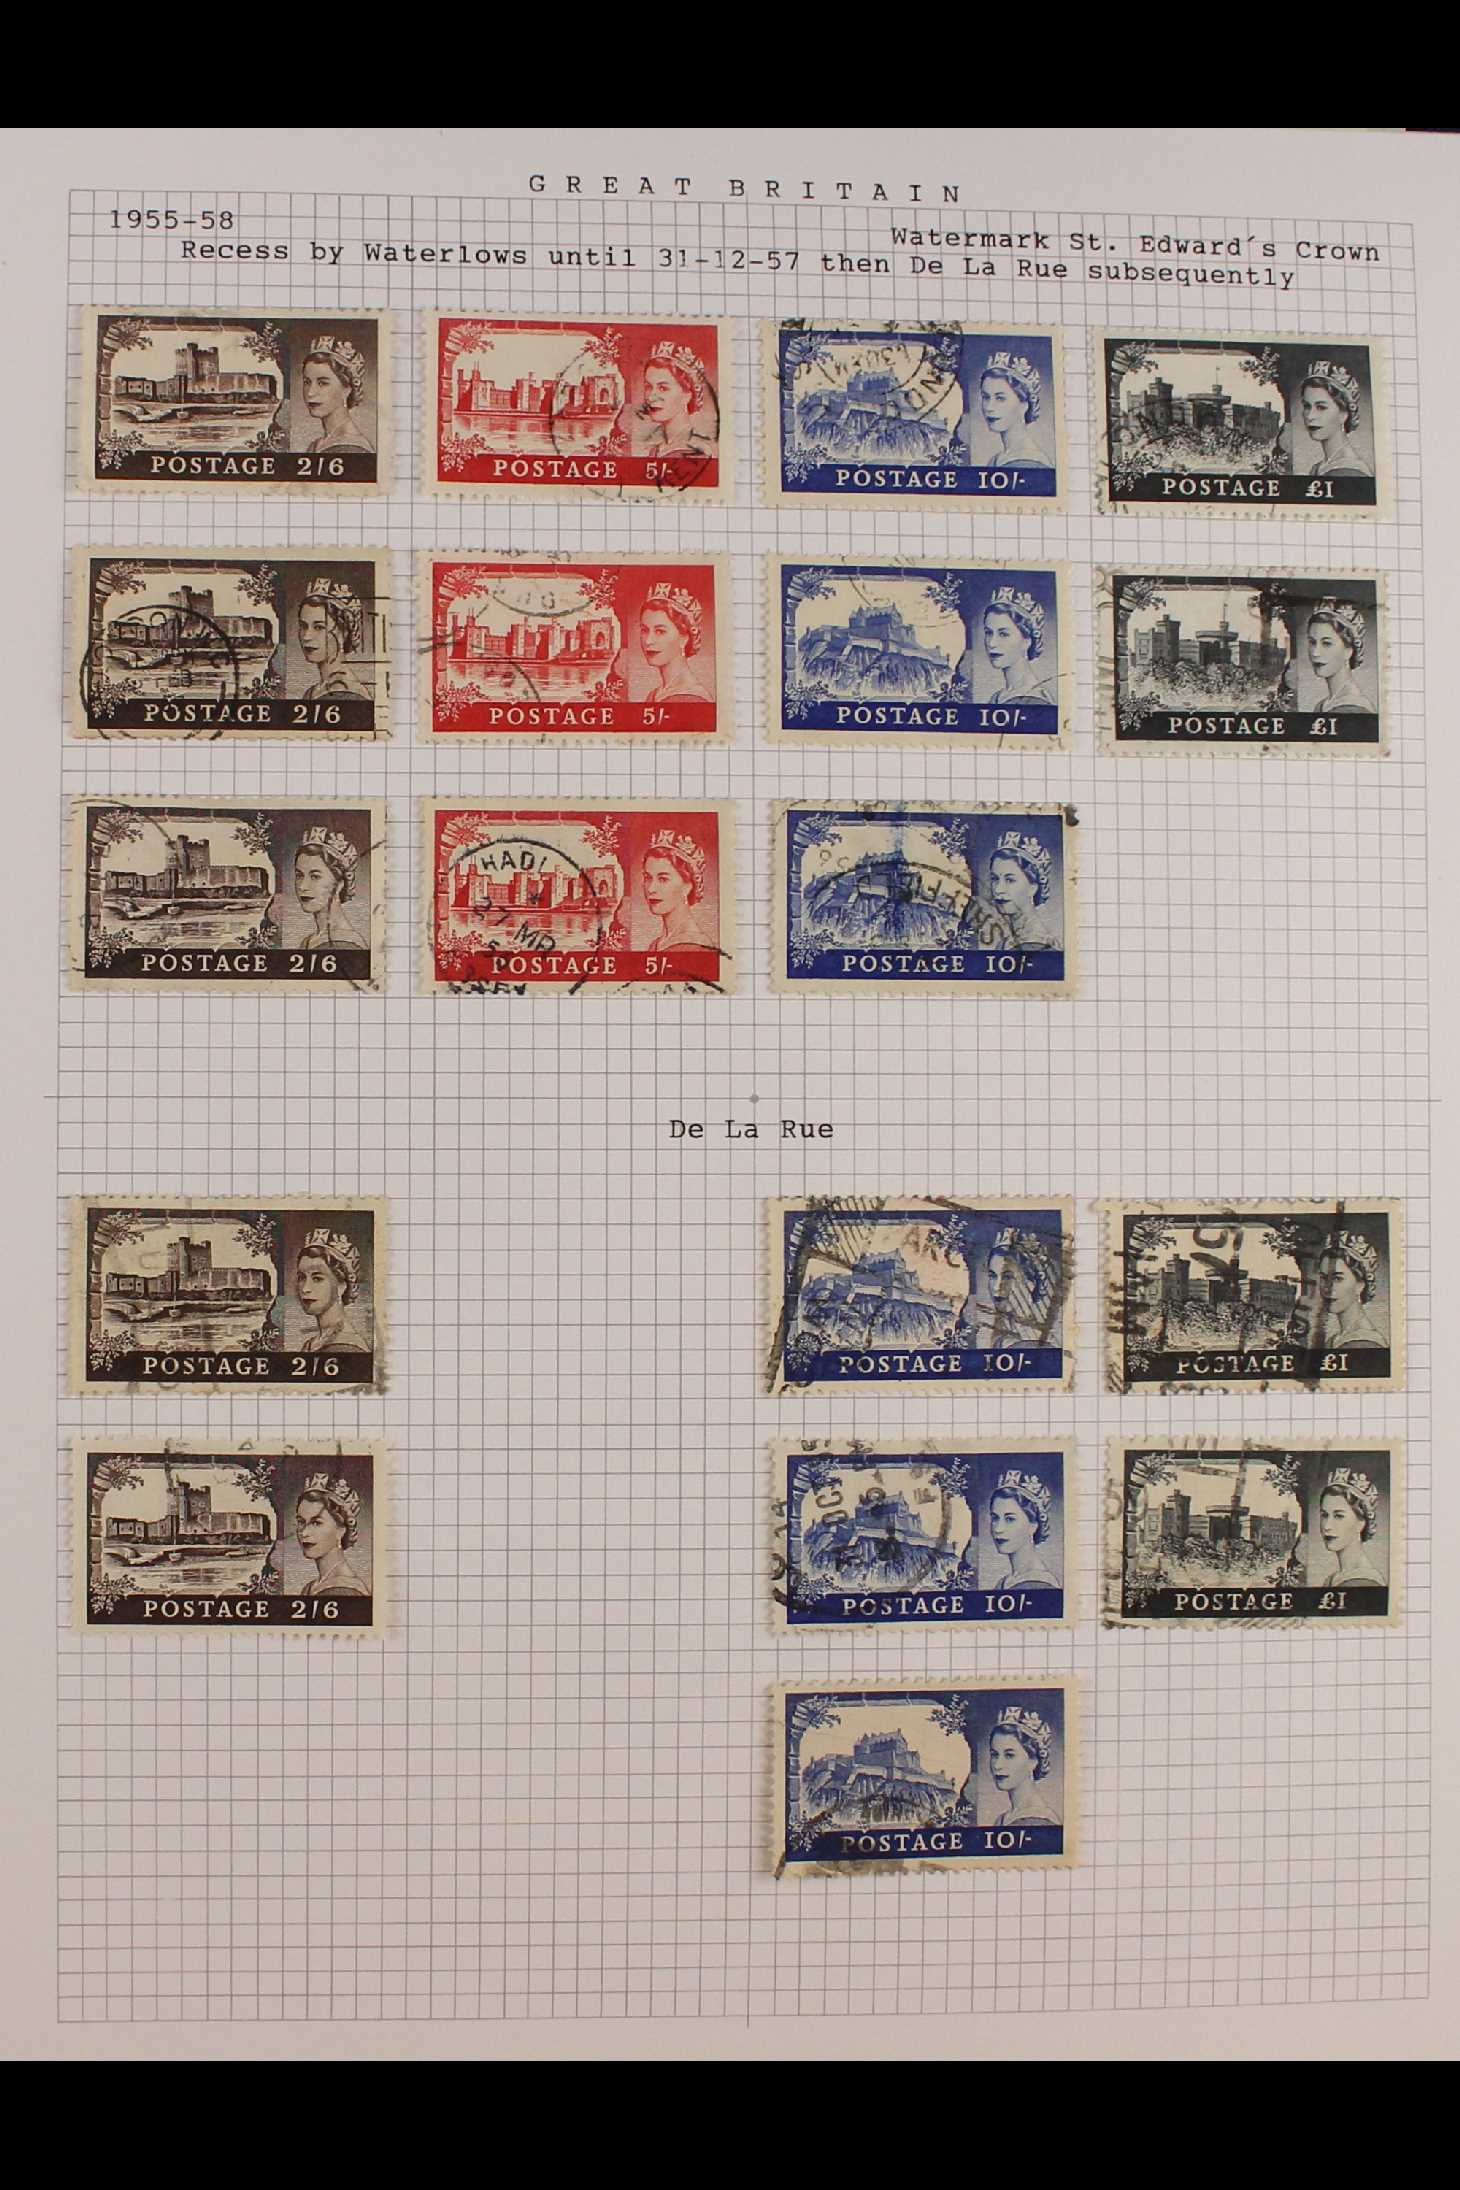 GB.ELIZABETH II 1953-1999 fine used collection in two albums with extensive Wilding & - Image 2 of 18